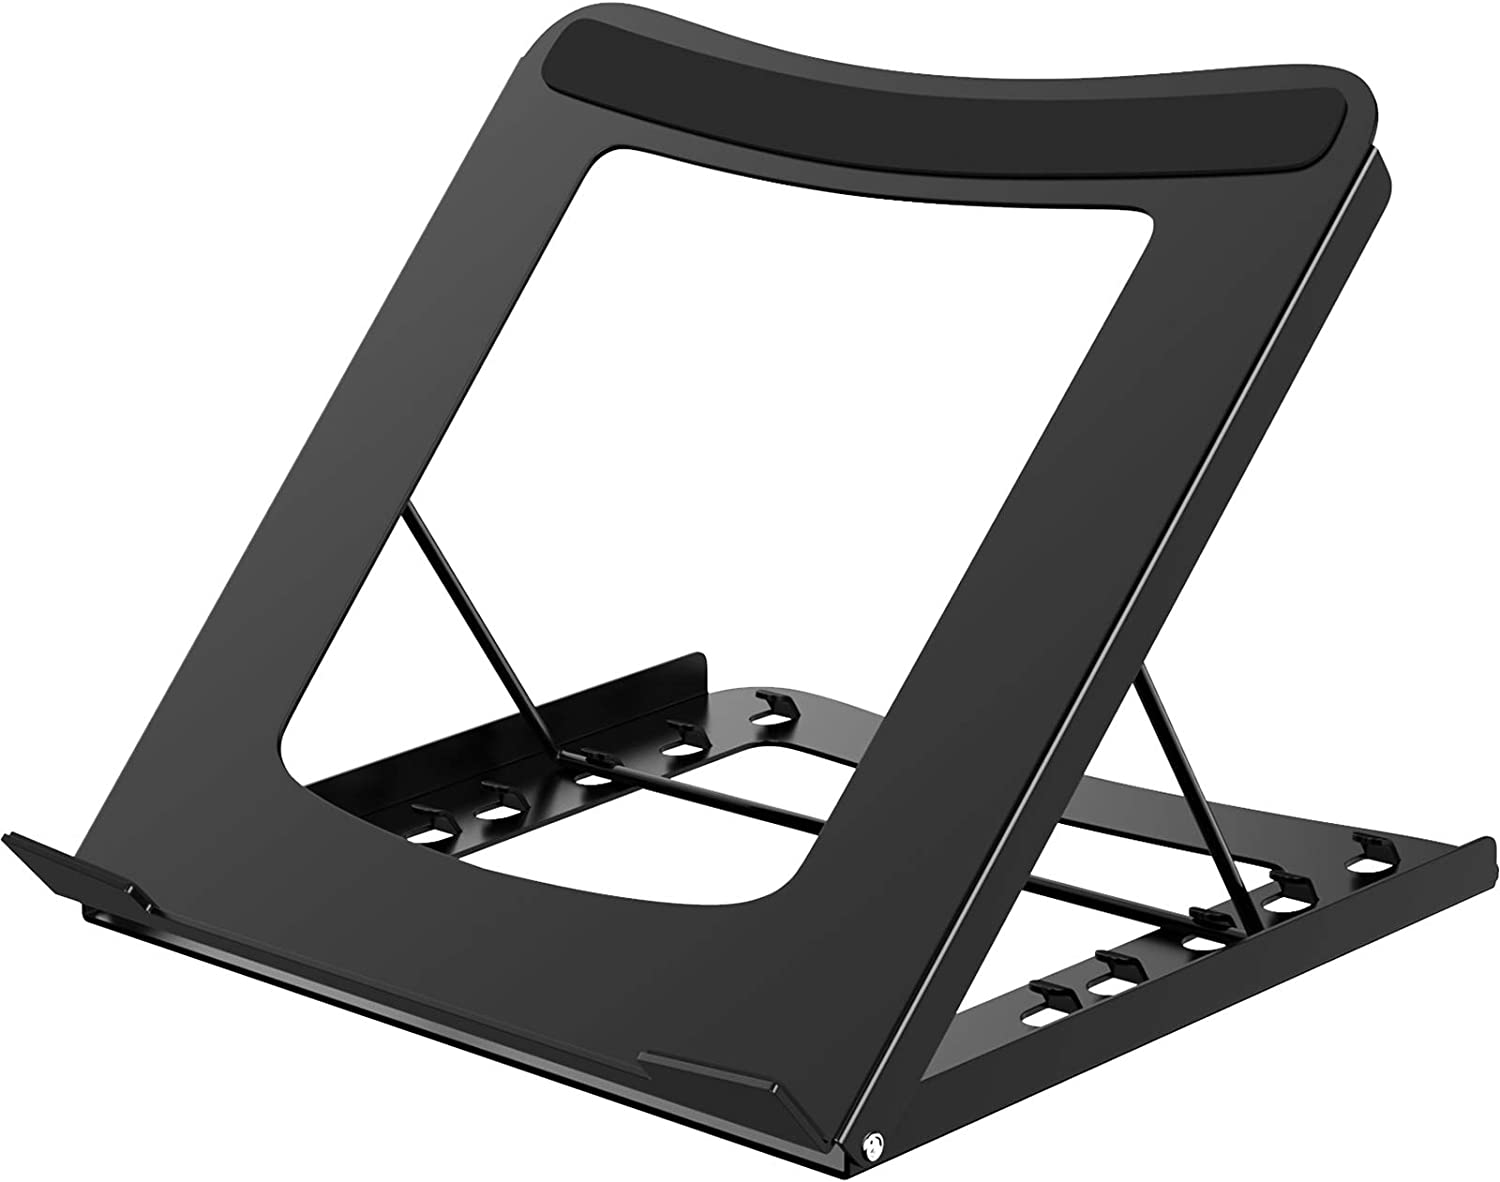 Laptop Stand,Adjustable Laptop Stand Riser Suitable for 10-15